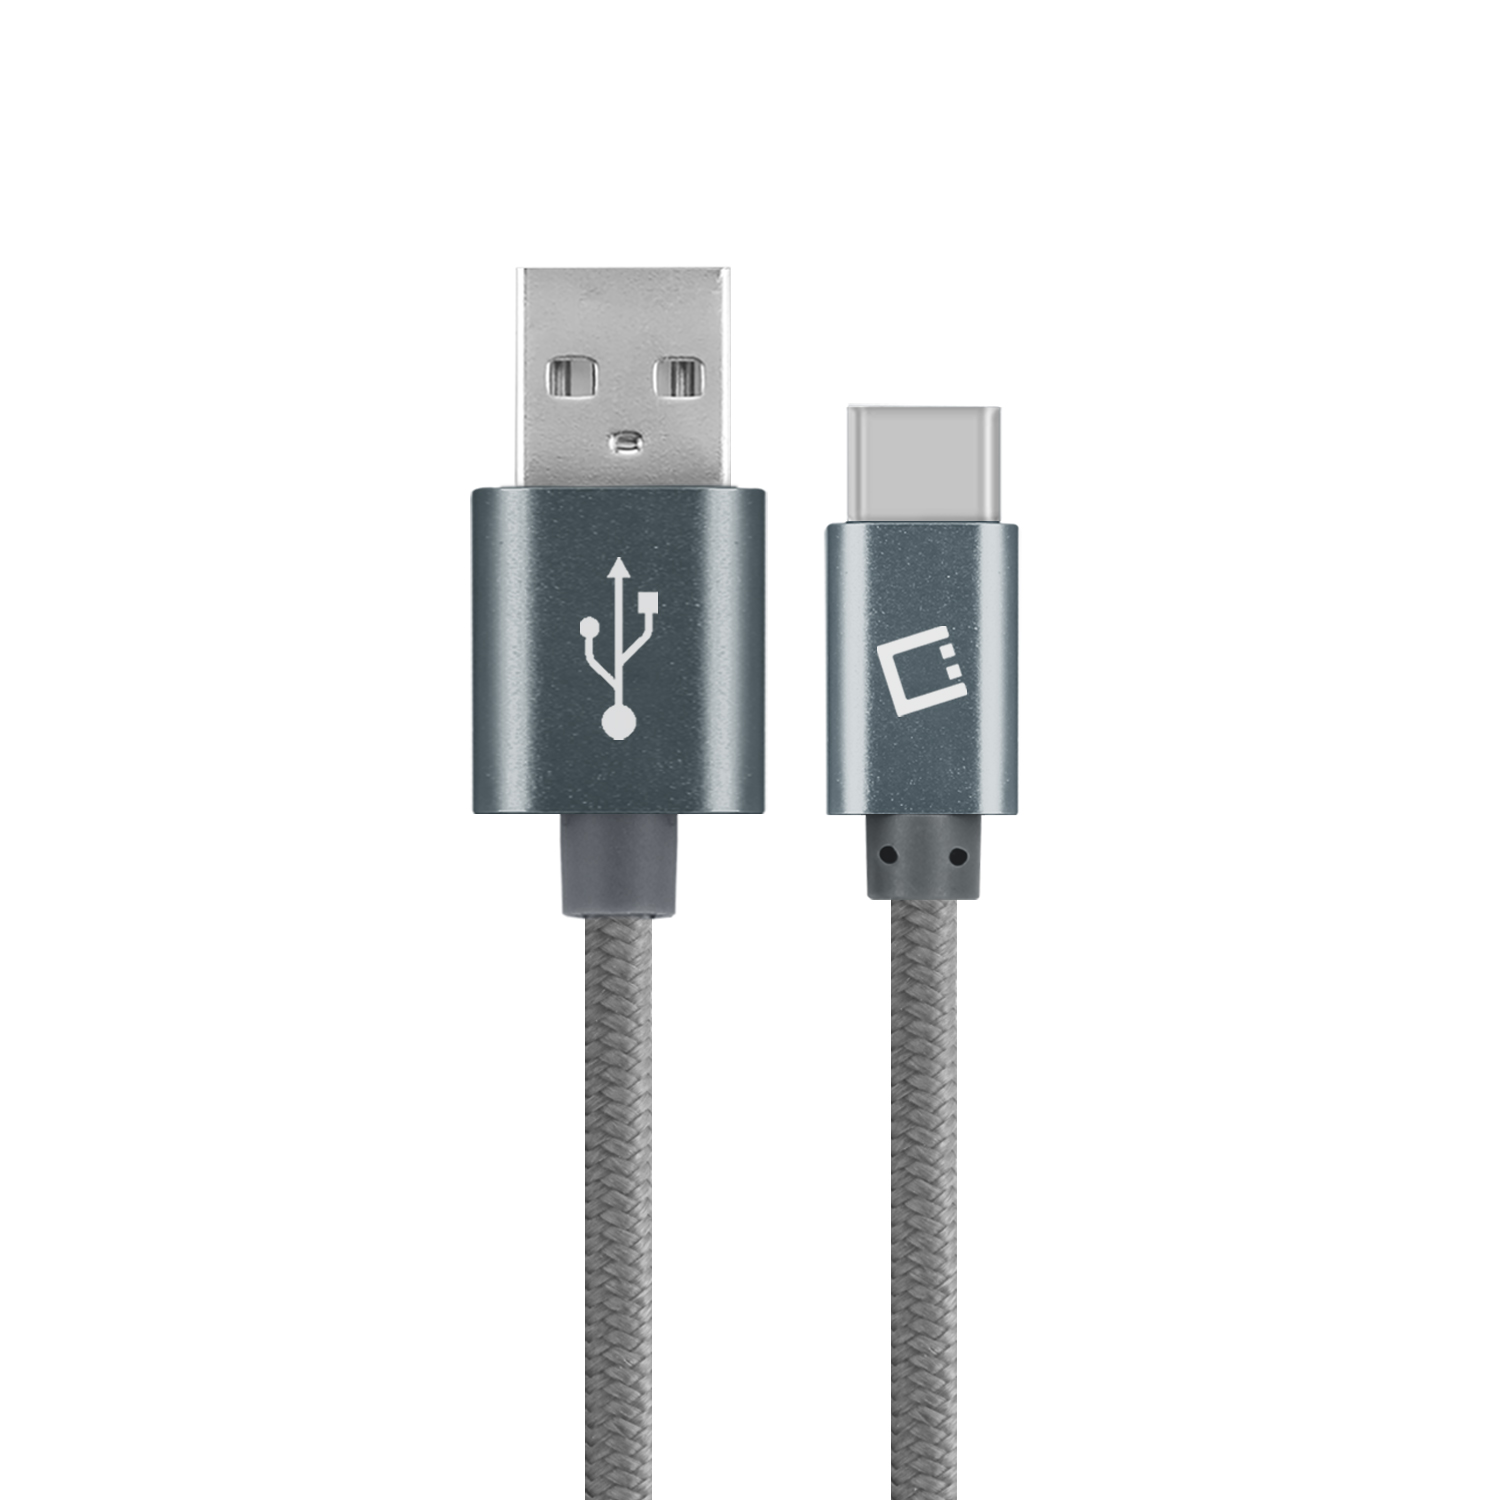 Samsung Galaxy A11 USB Type-C To Type-A Braided Data Power Cable Grey 6ft Braided